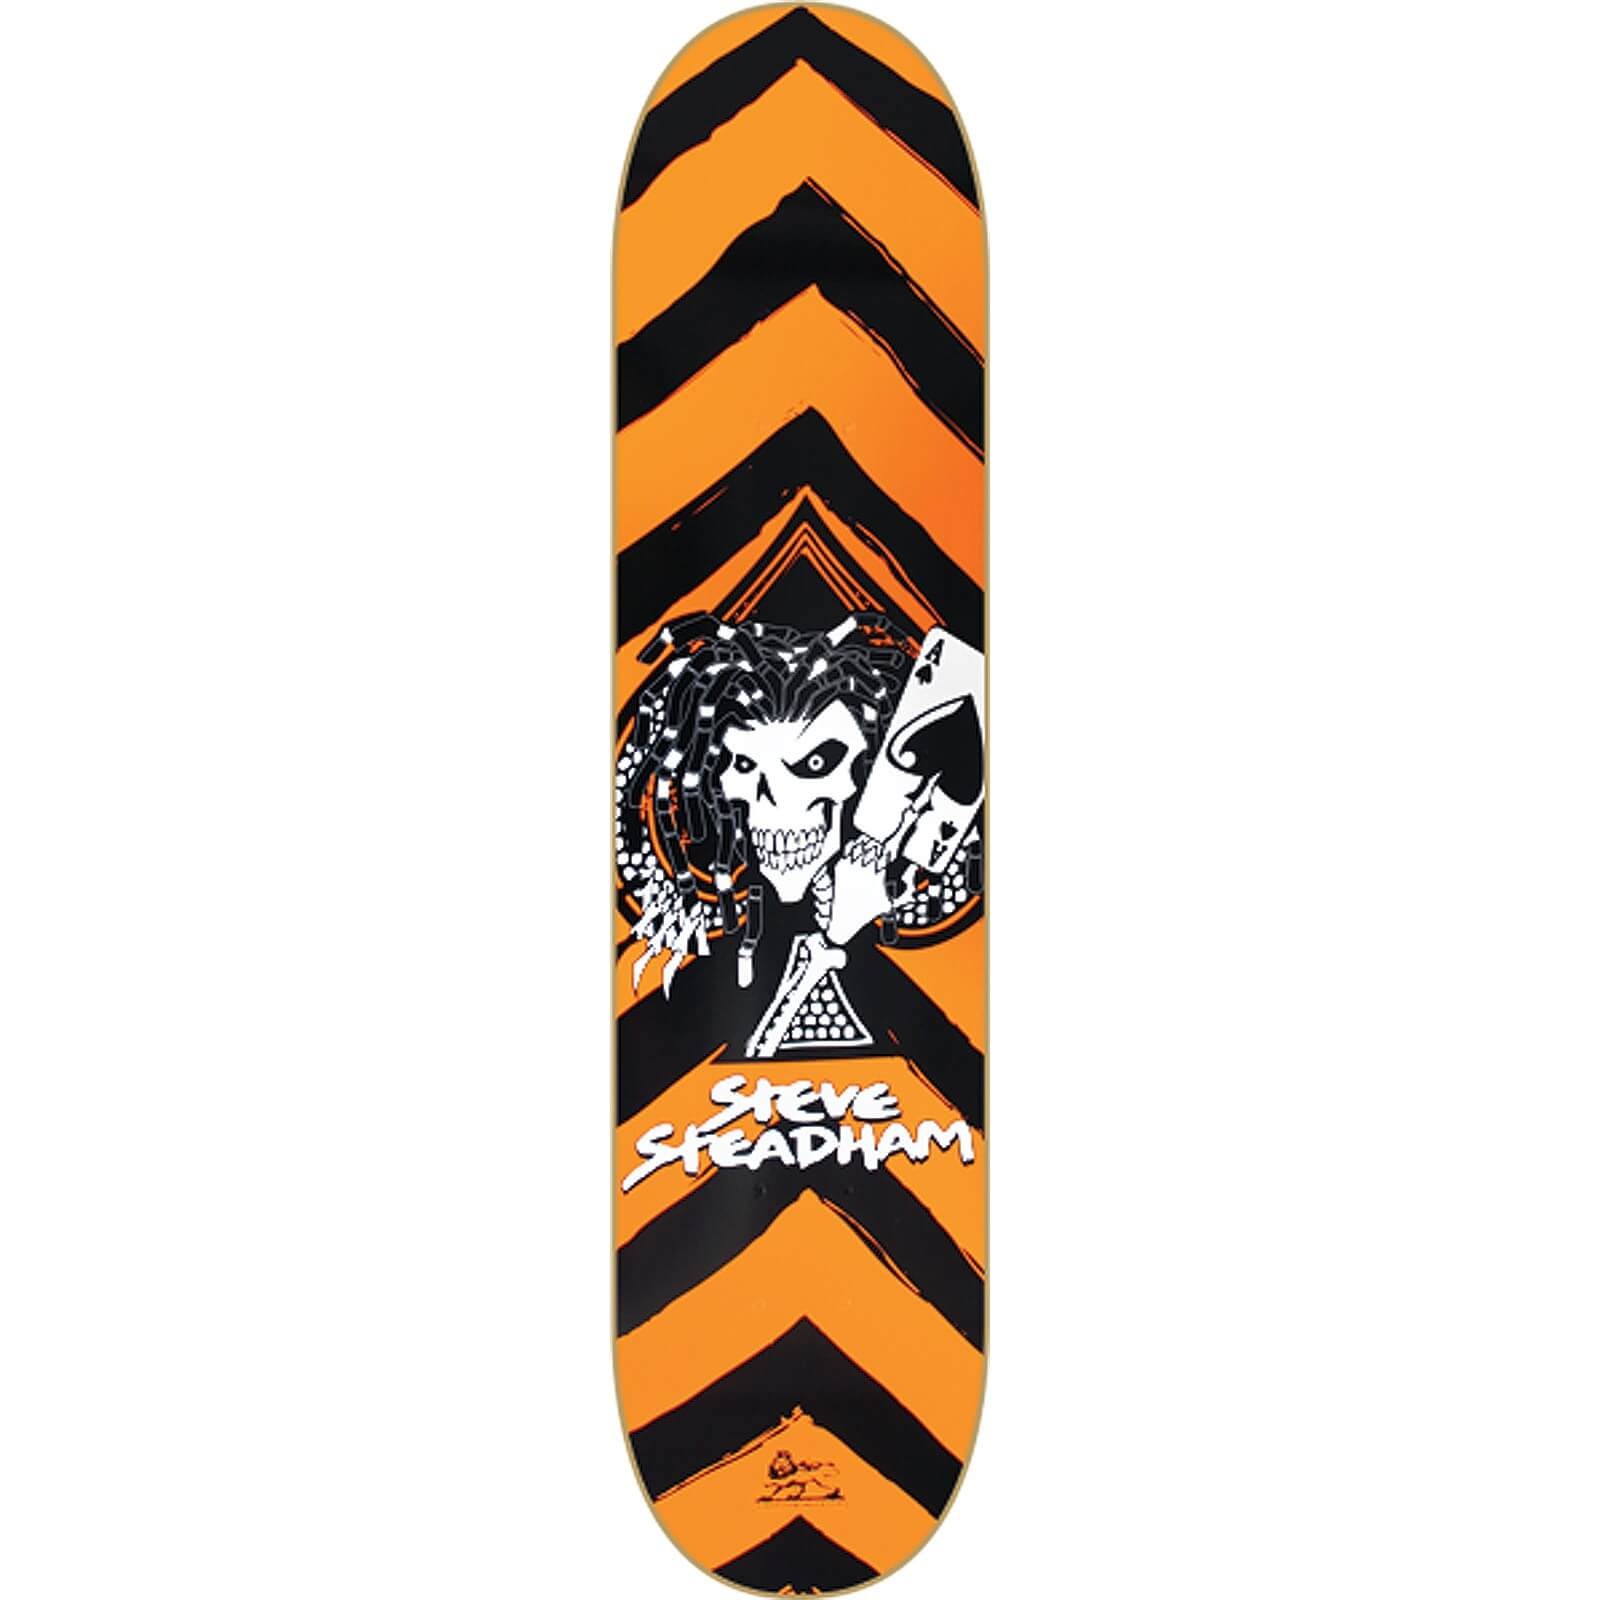 Steadham Skate New Skull Deck